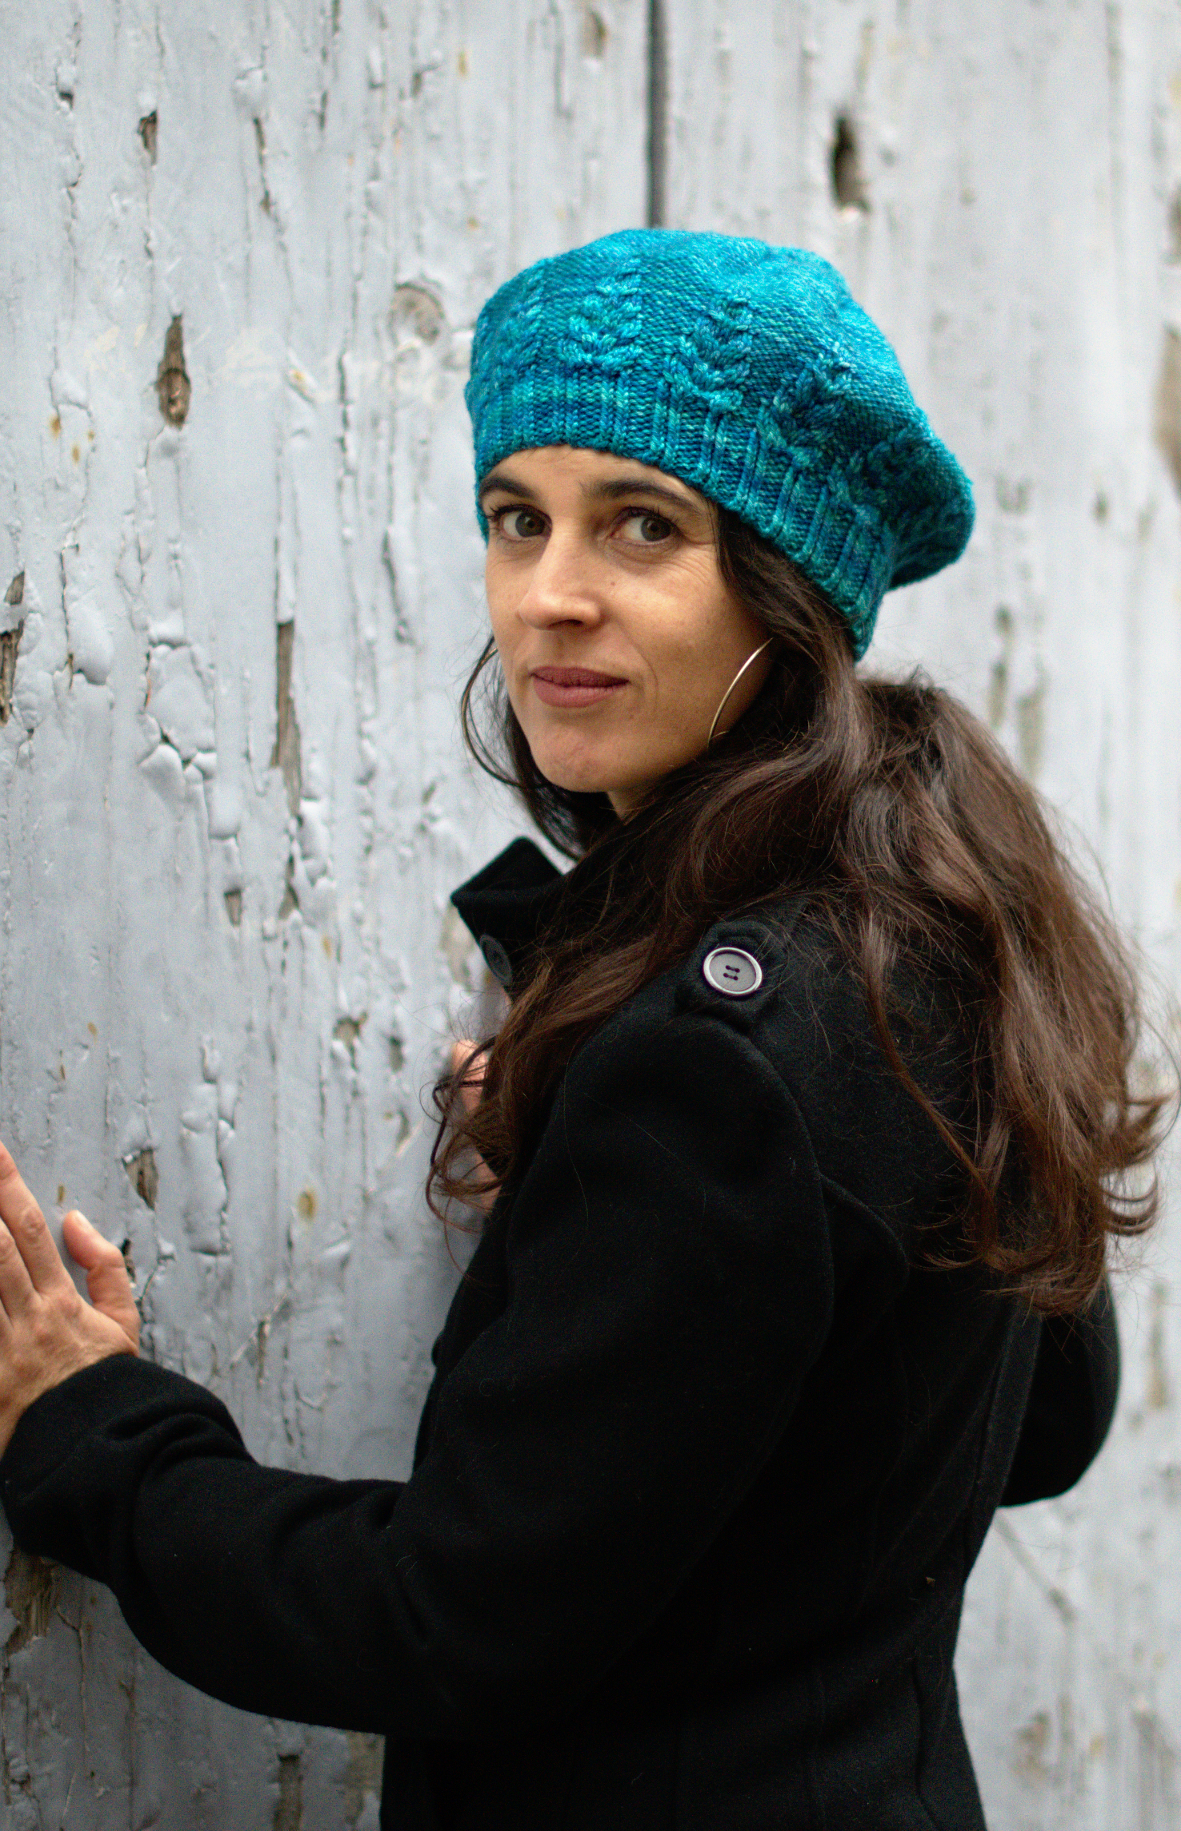 hand knitting pattern for the Armley beret